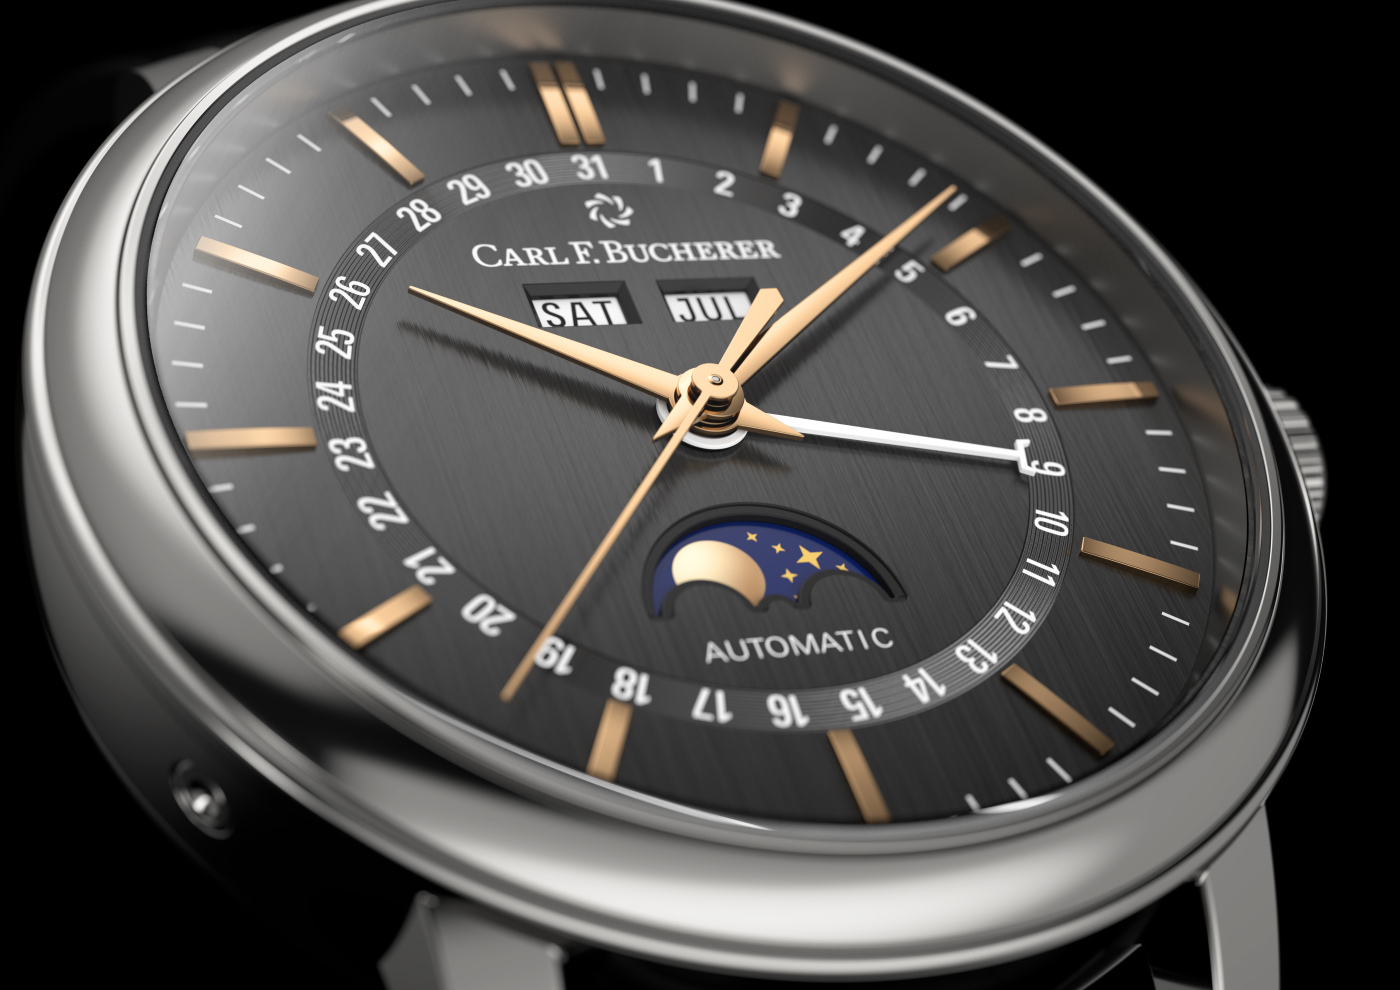 carl_f_bucherer_the_new_adamavi_fullcalendar_dial_-_europa_star_magazine_2021